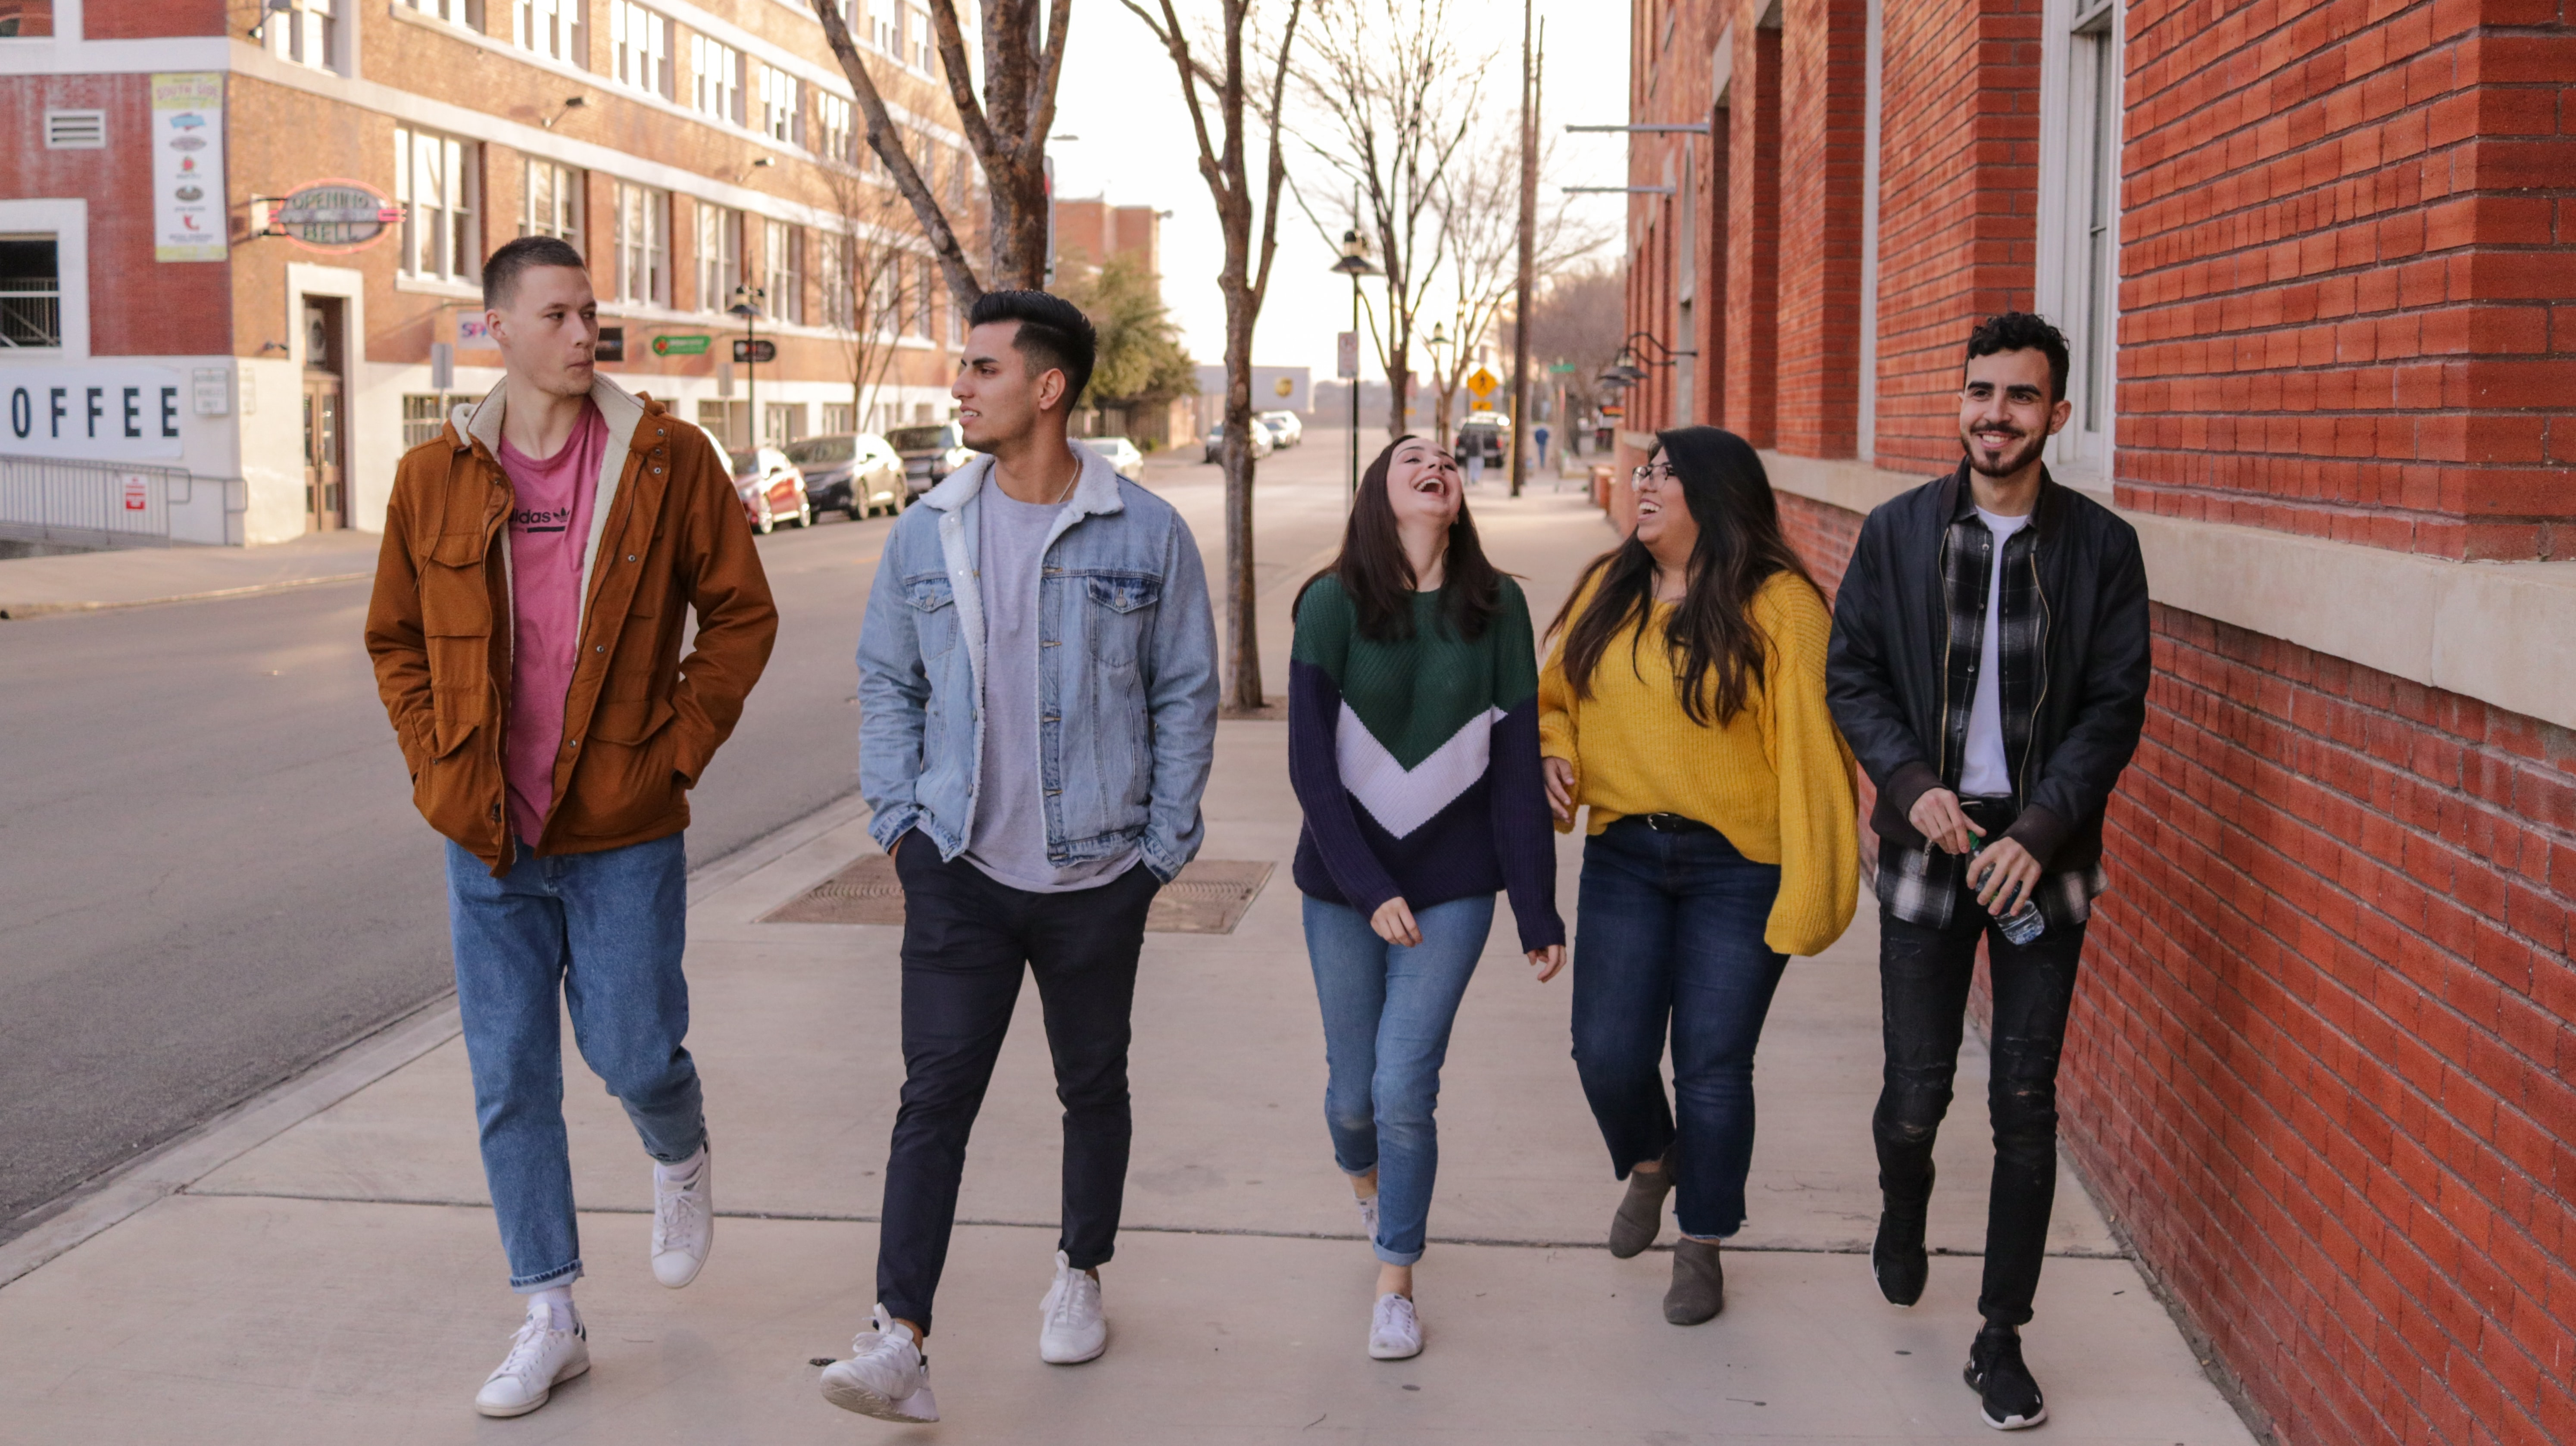 5 college students laughing and talking on the street.